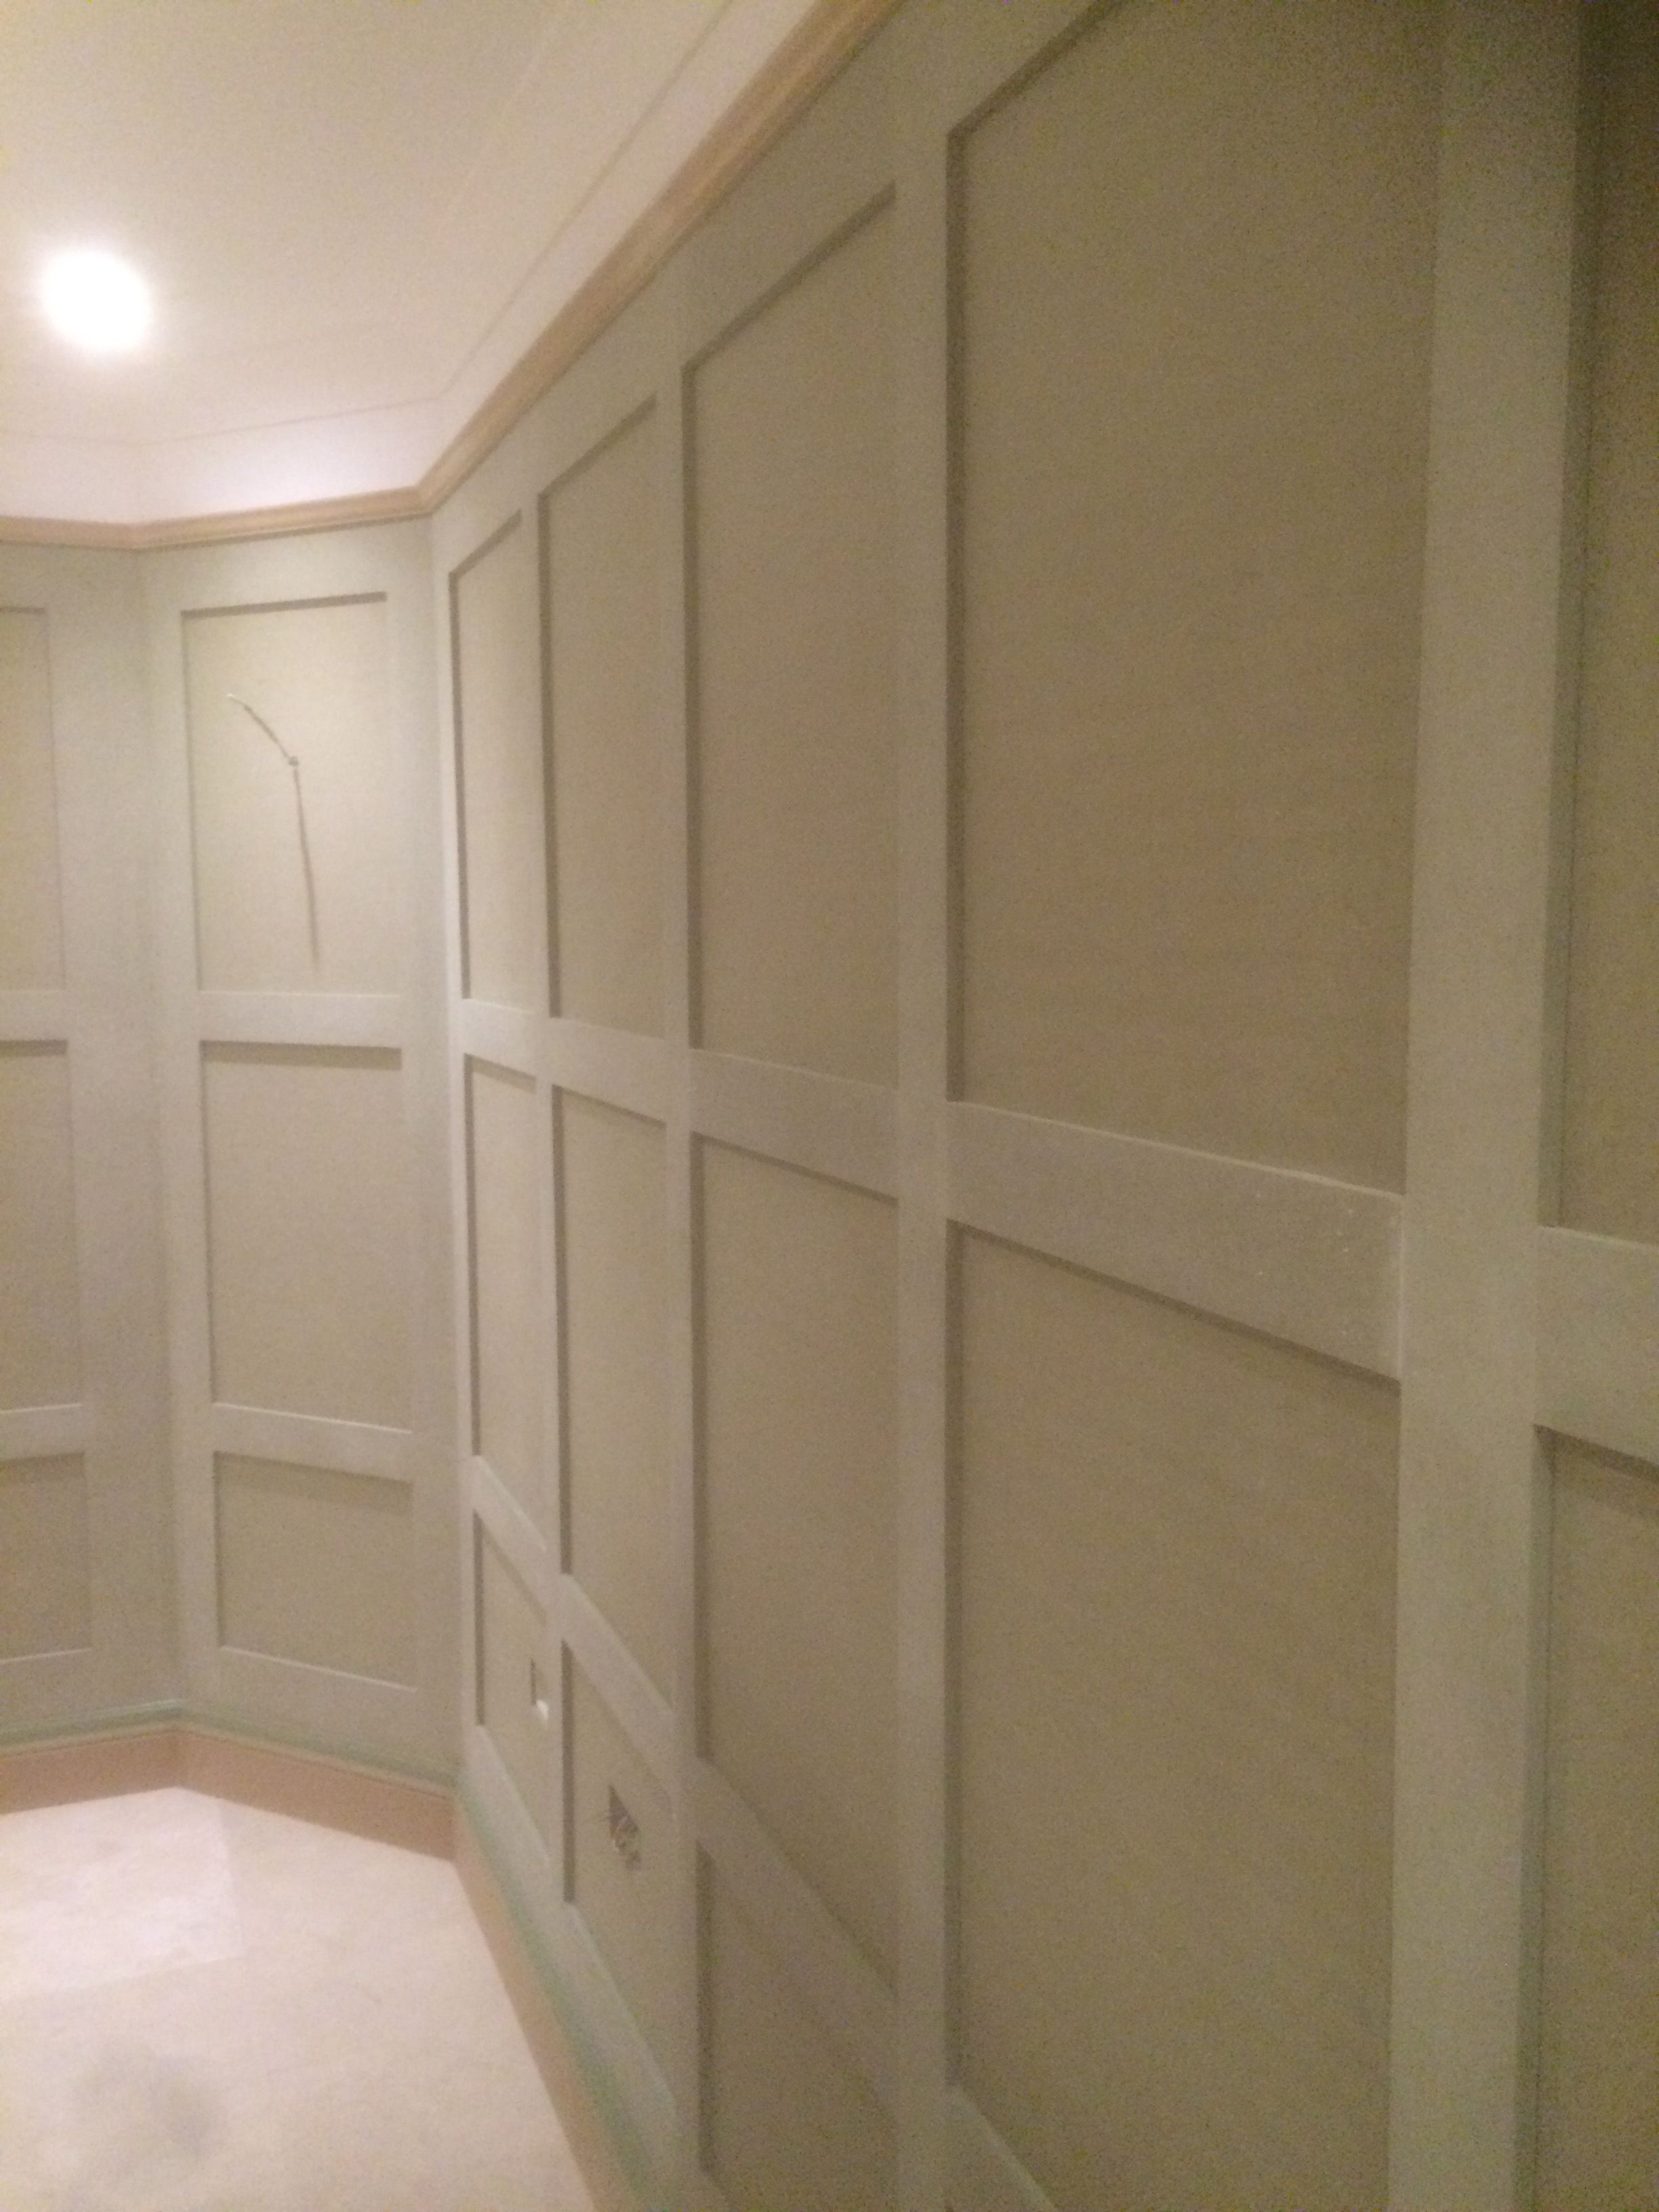 Paneled Walls Pics: 18mm Thick High Quality Made To Order Shaker Panelling